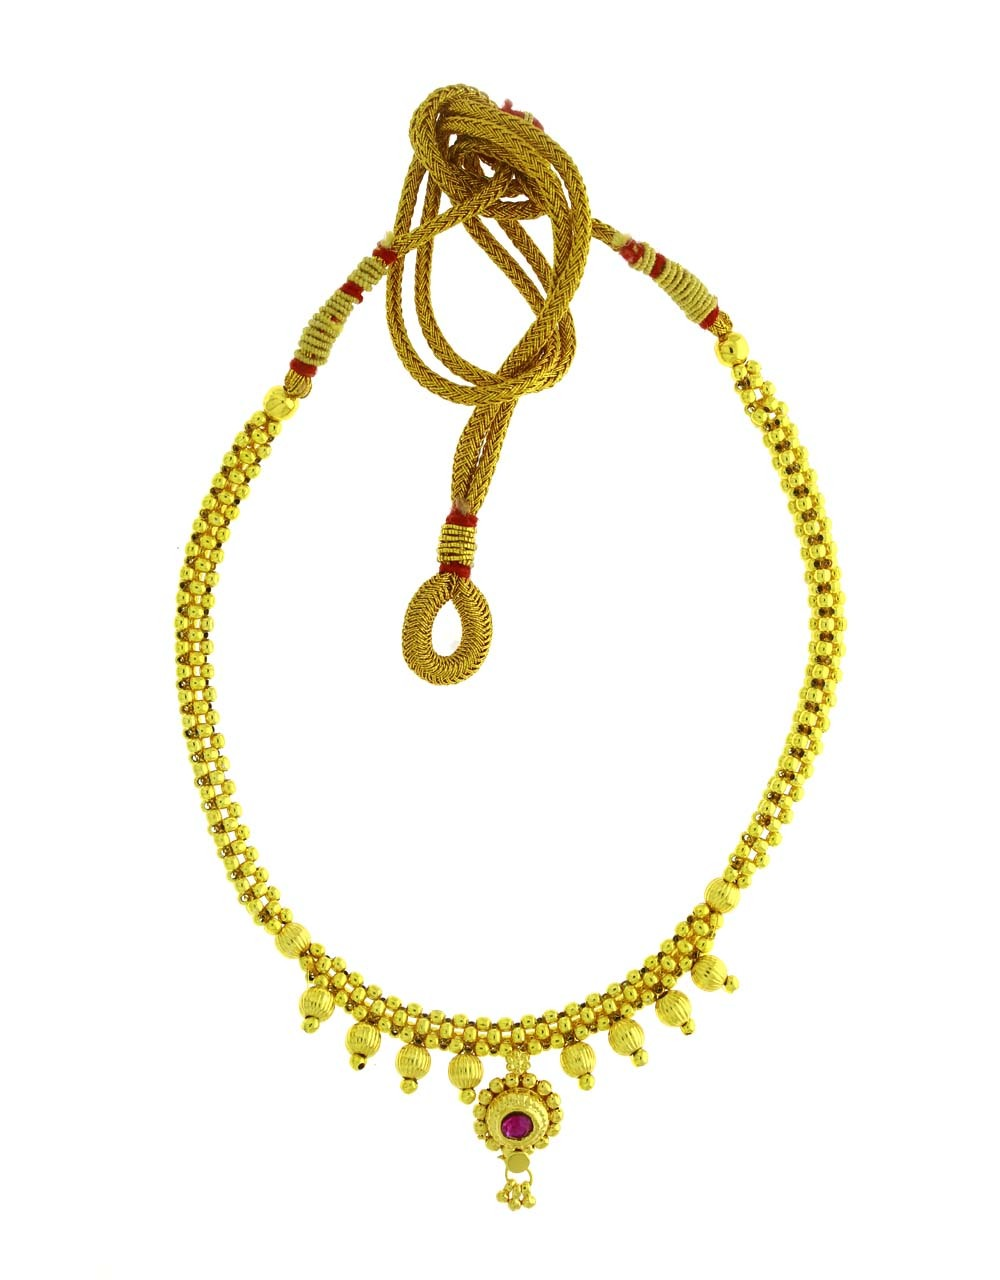 Golden Finished Appealing Beaded Thushi Necklace for Women